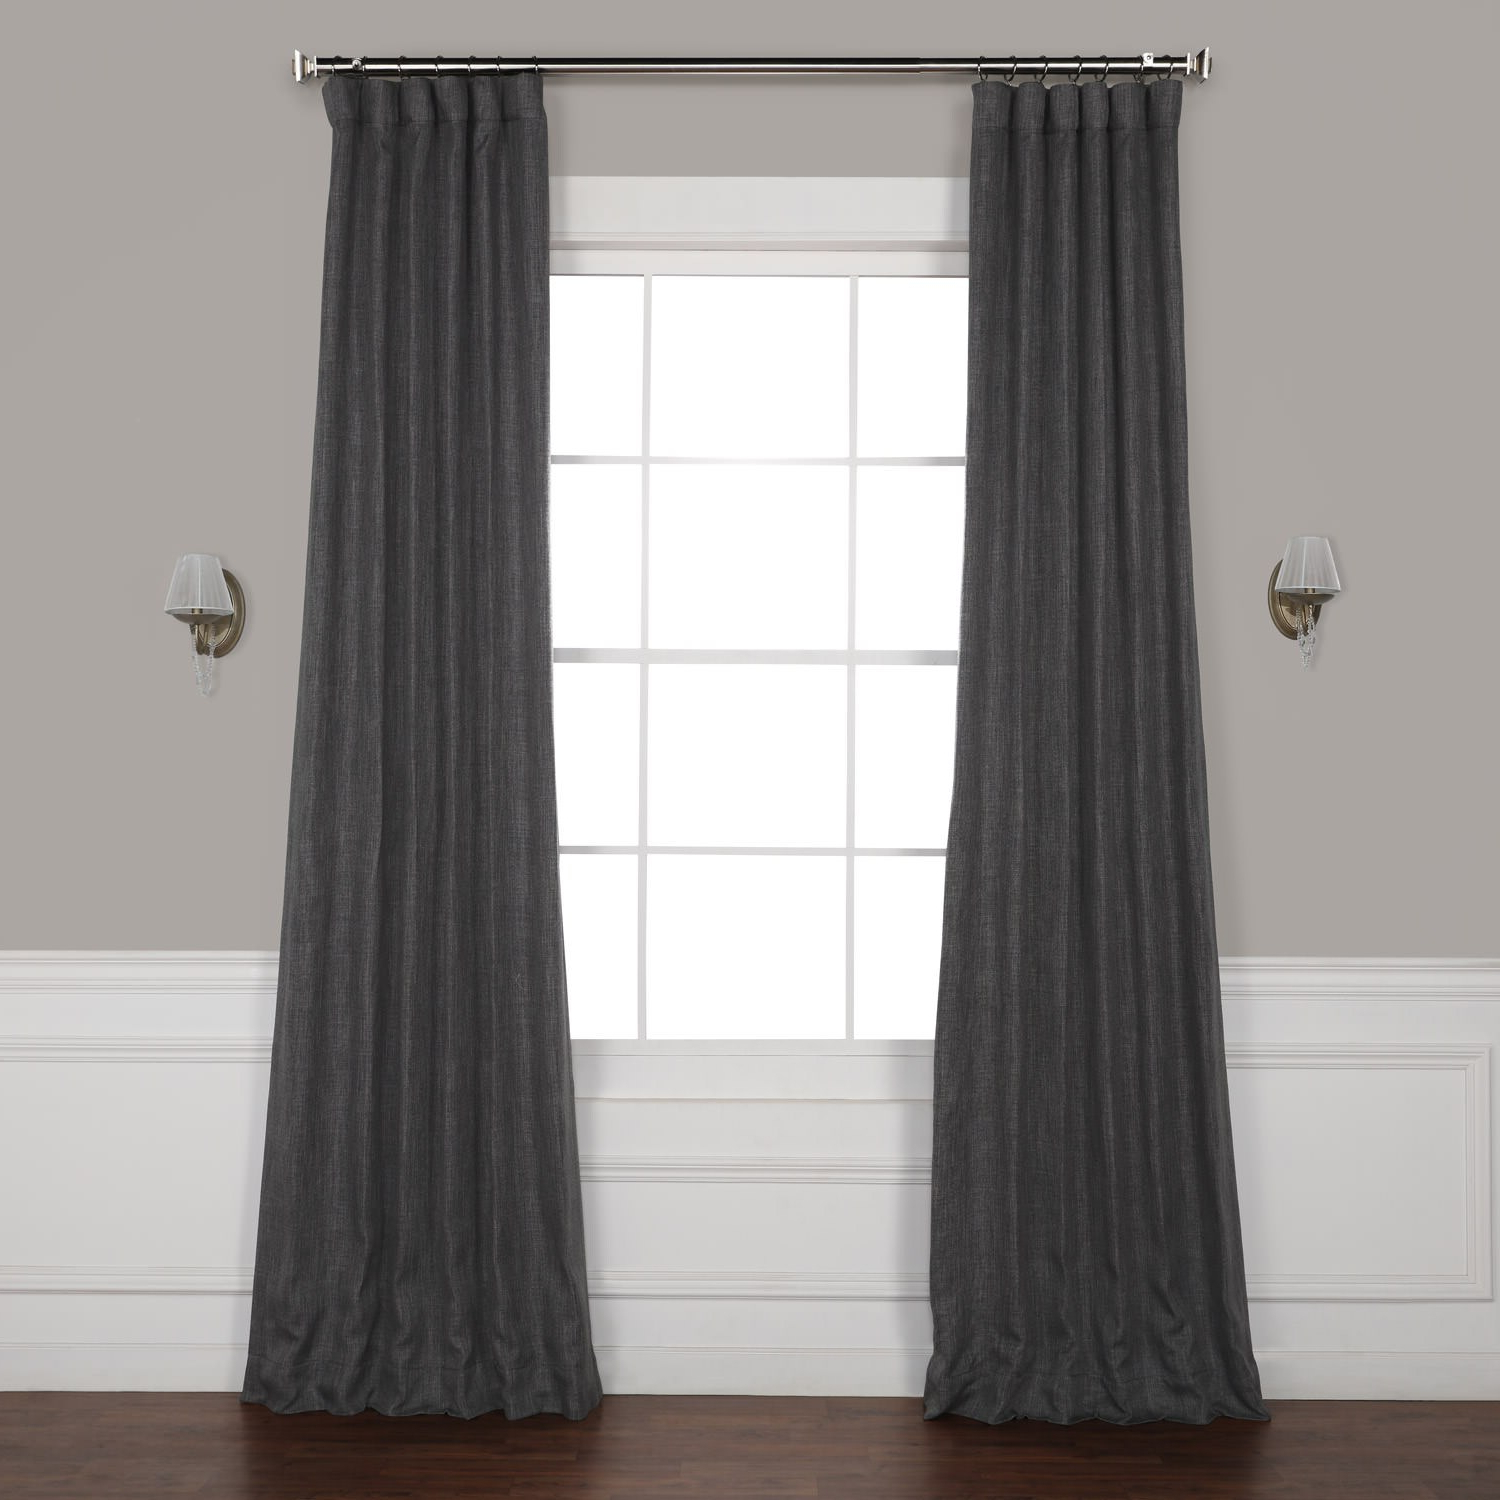 Dark Gravel Faux Linen Blackout Curtain Within Well Known Faux Linen Blackout Curtains (View 2 of 20)